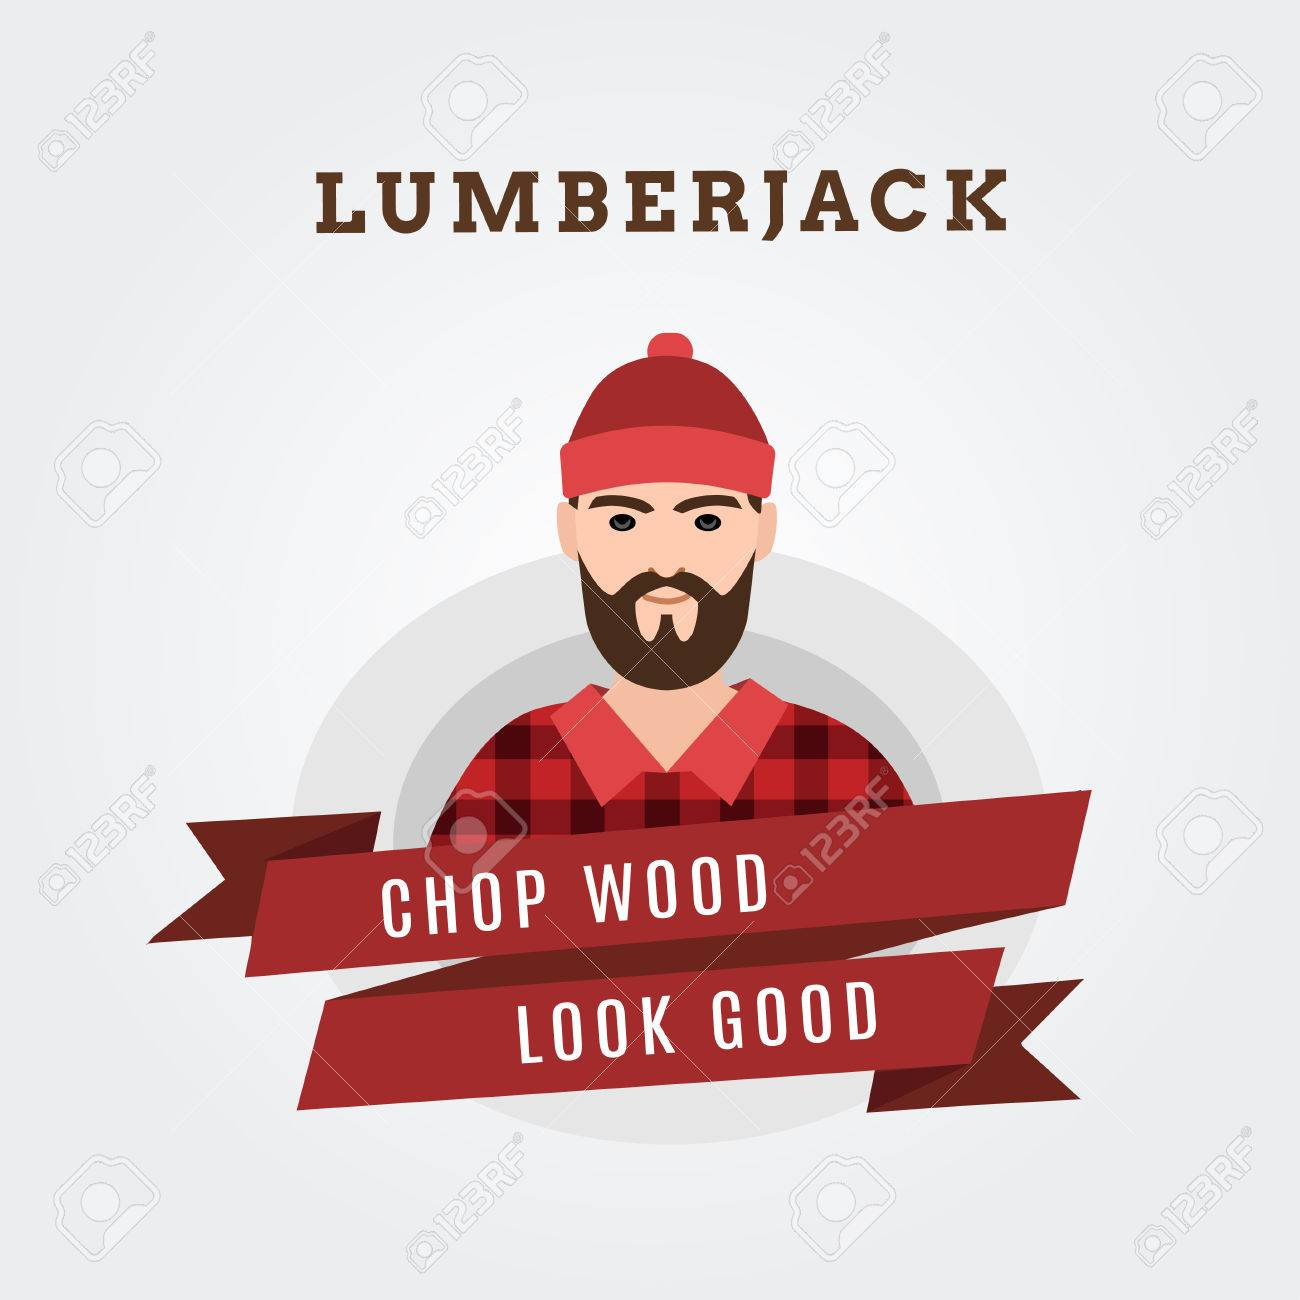 Vector Illustration of a lumberjack forester logger with scroll done in retro style - 40623704